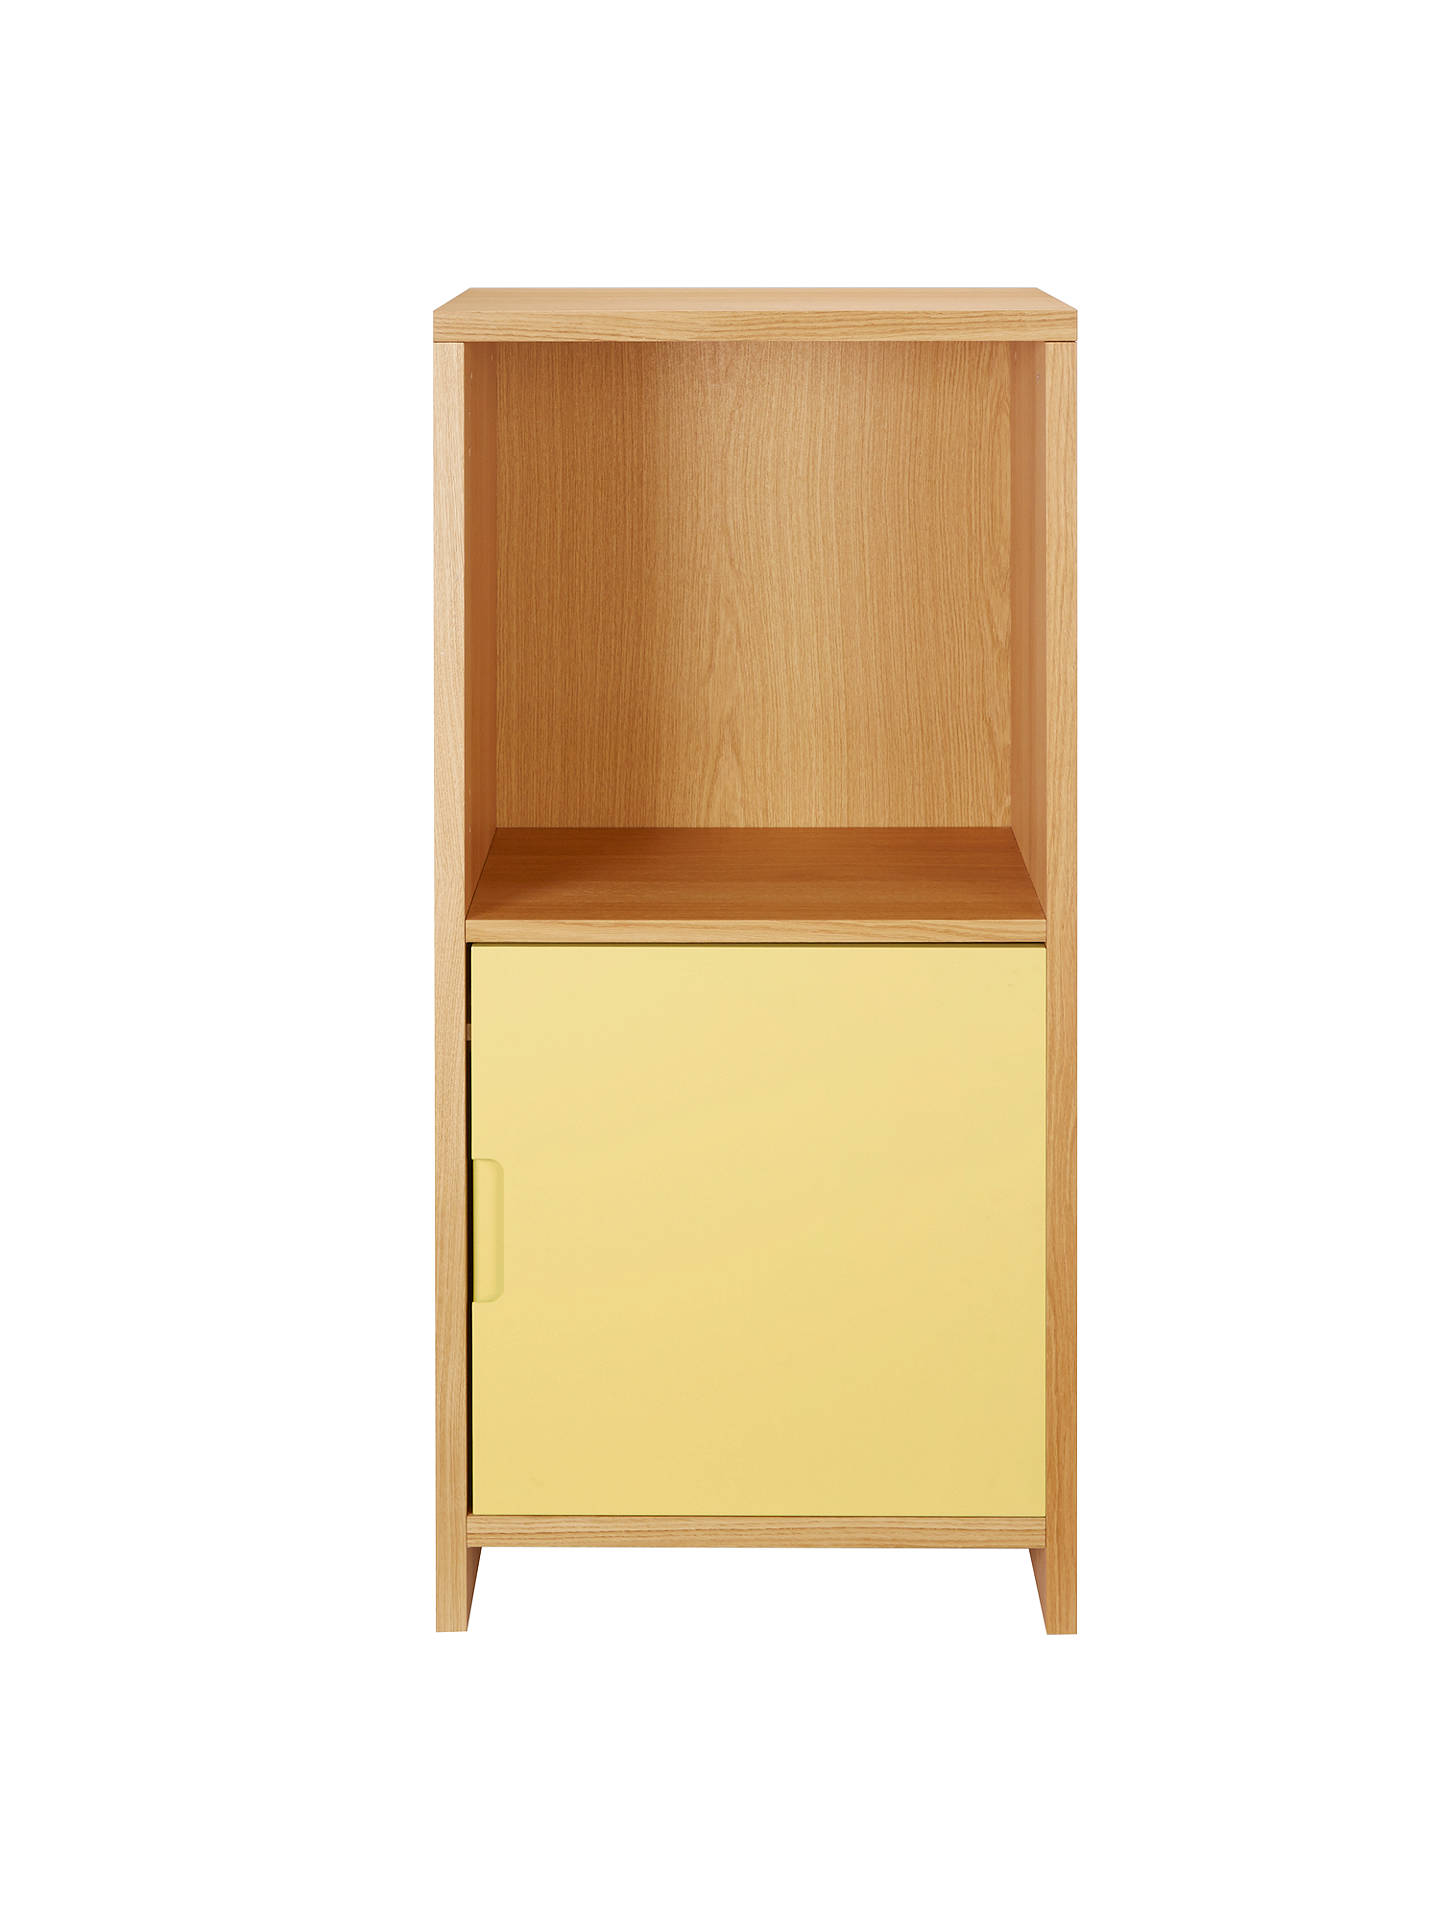 BuyHouse by John Lewis Oxford 1 x 2 Cube Unit with Door, Dandelion / Oak Online at johnlewis.com